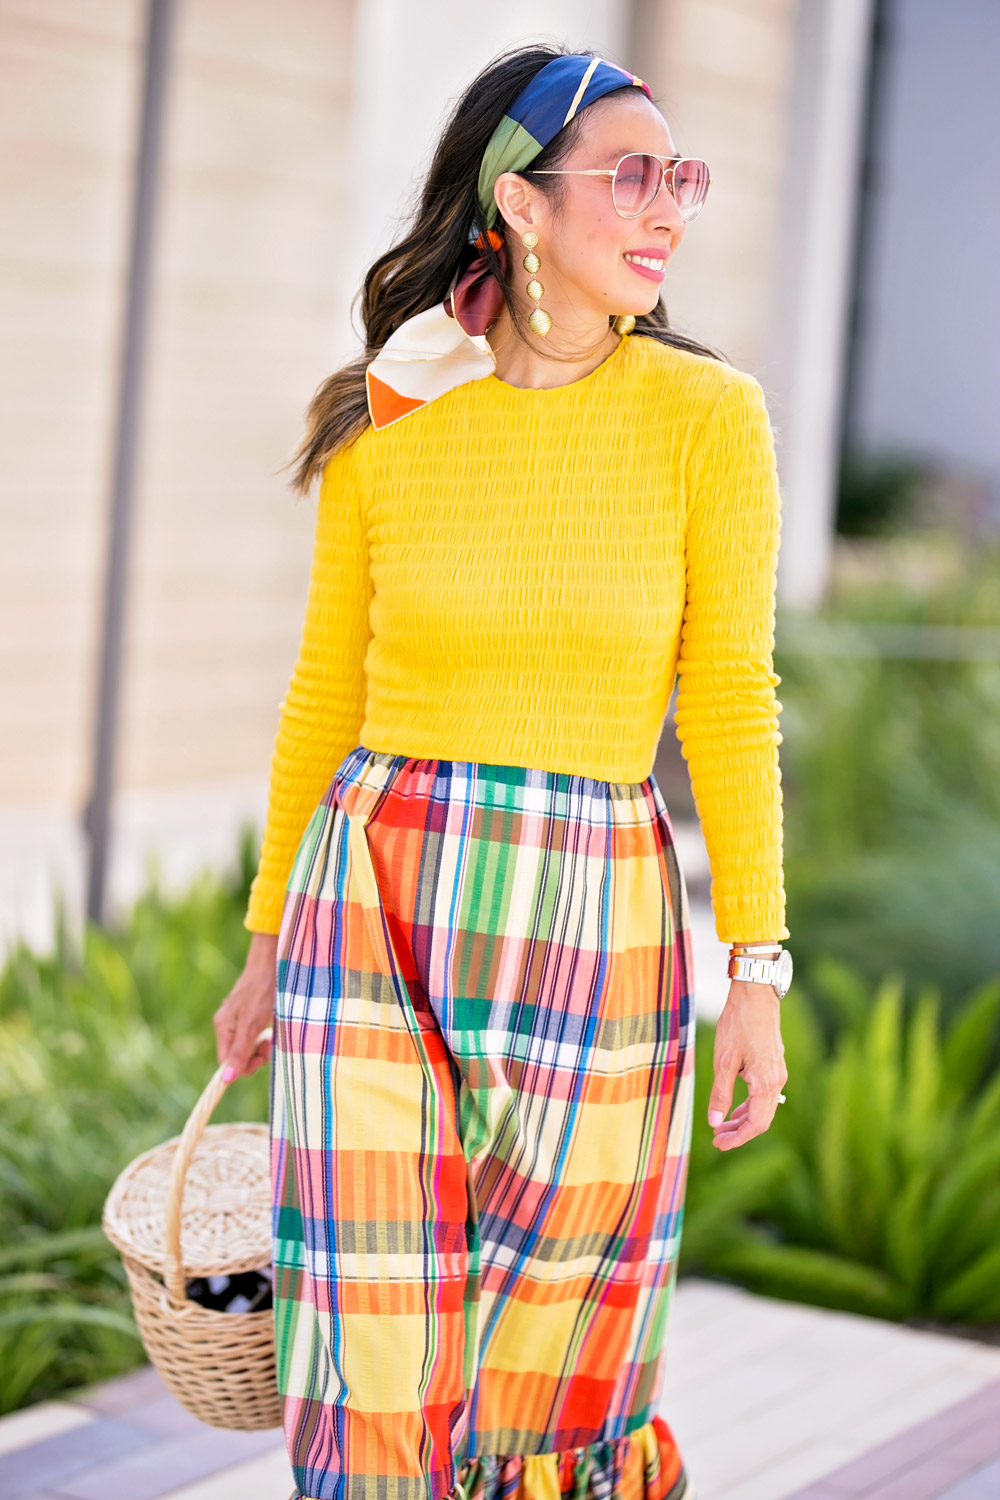 vintage yellow plaid ruffle maxi dress basket bag gold drop earring sonix rose pink aviator sunglasses scarf in hair